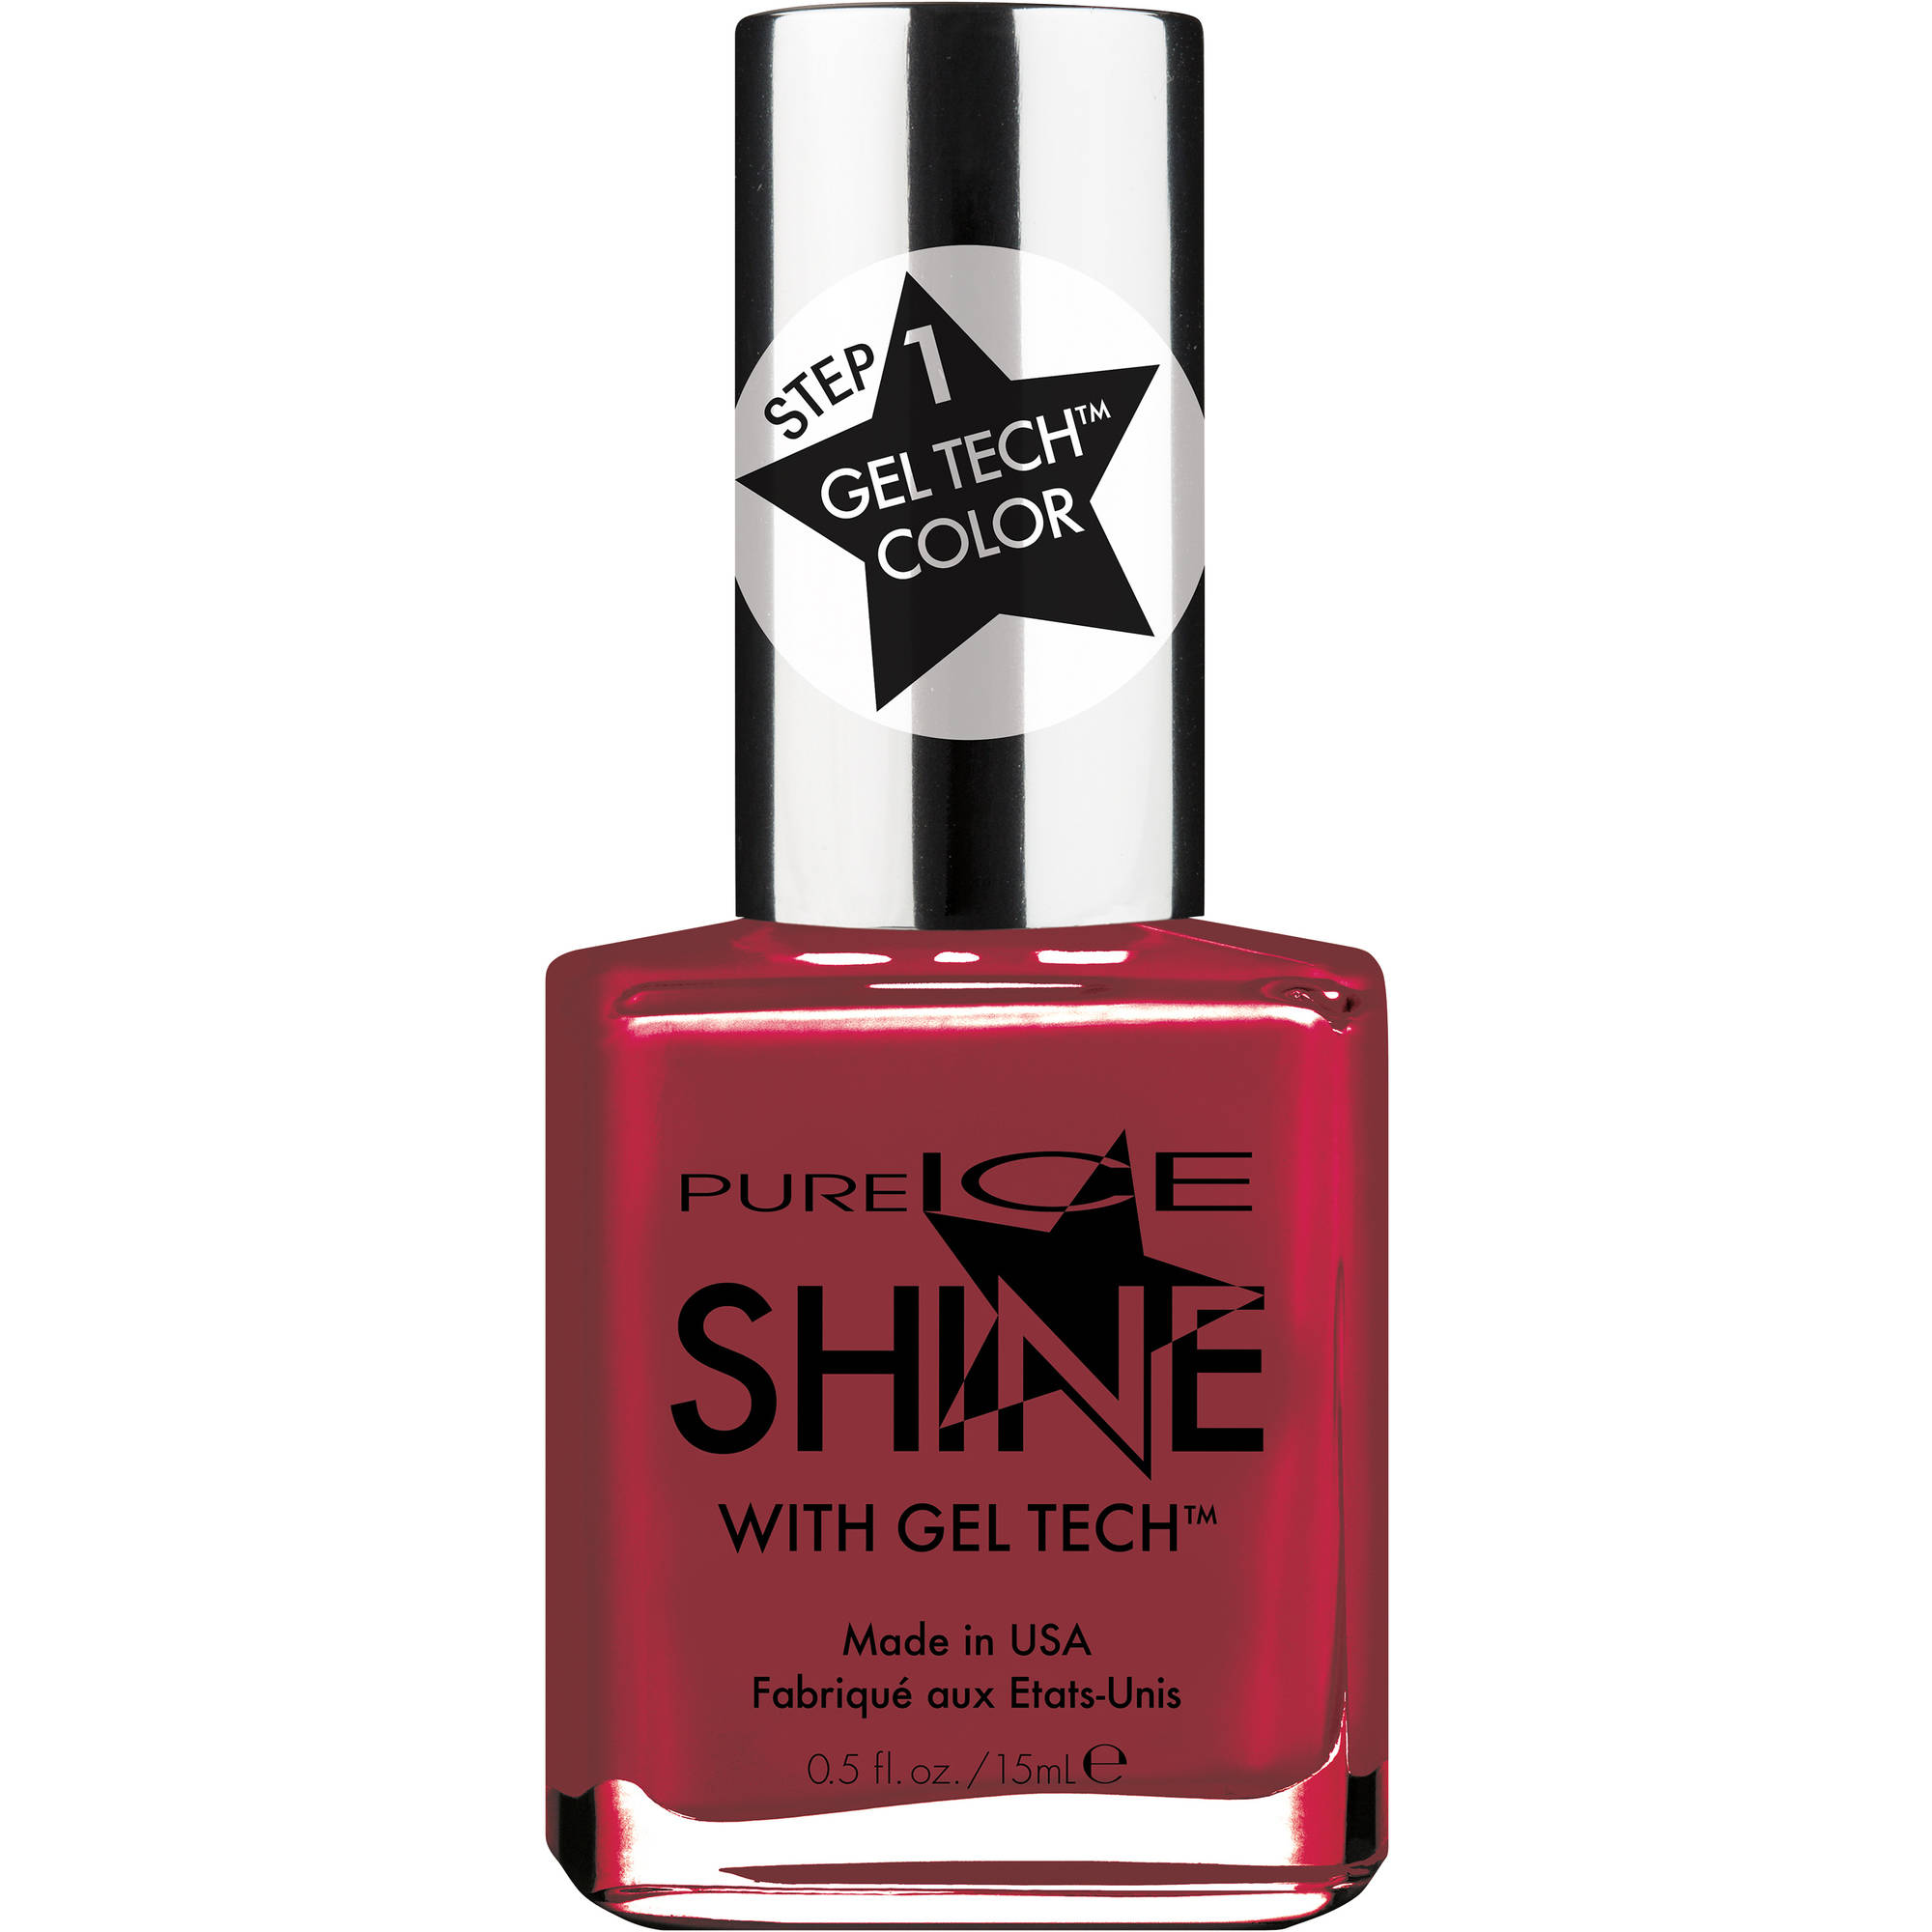 Pure Ice Shine with Gel Tech Nail Polish, Not the Gloss of Me, 0.5 fl oz